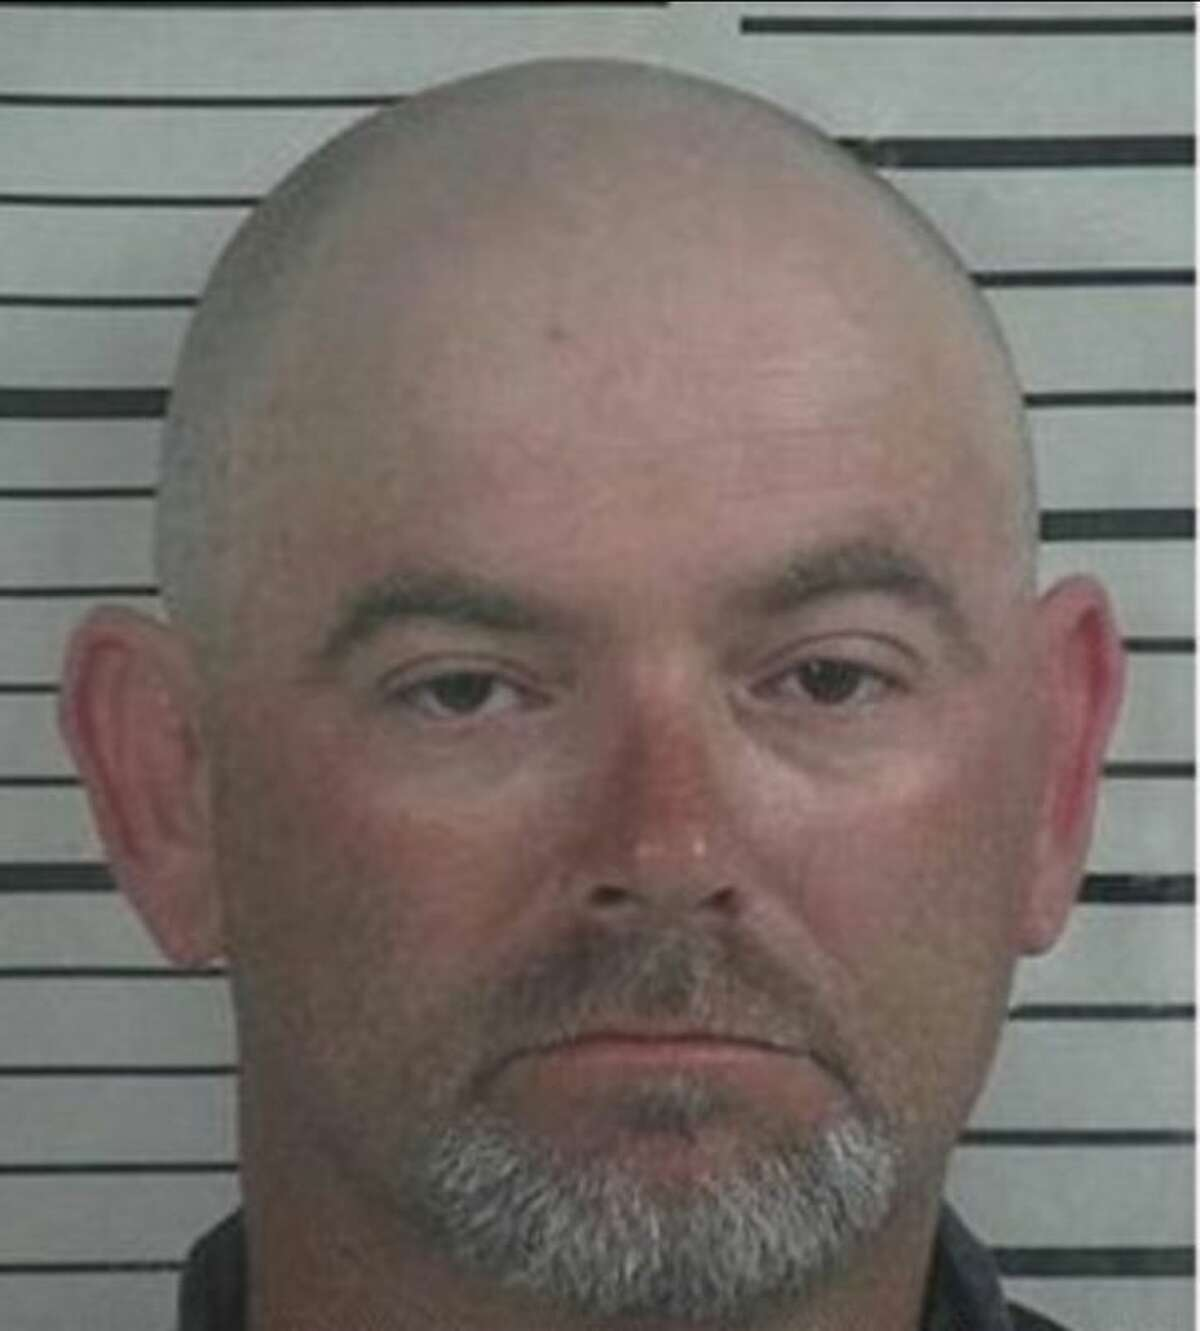 Jay Maynor was sentenced to 40 years in prison after murdering the man who sexually abused his daughter.